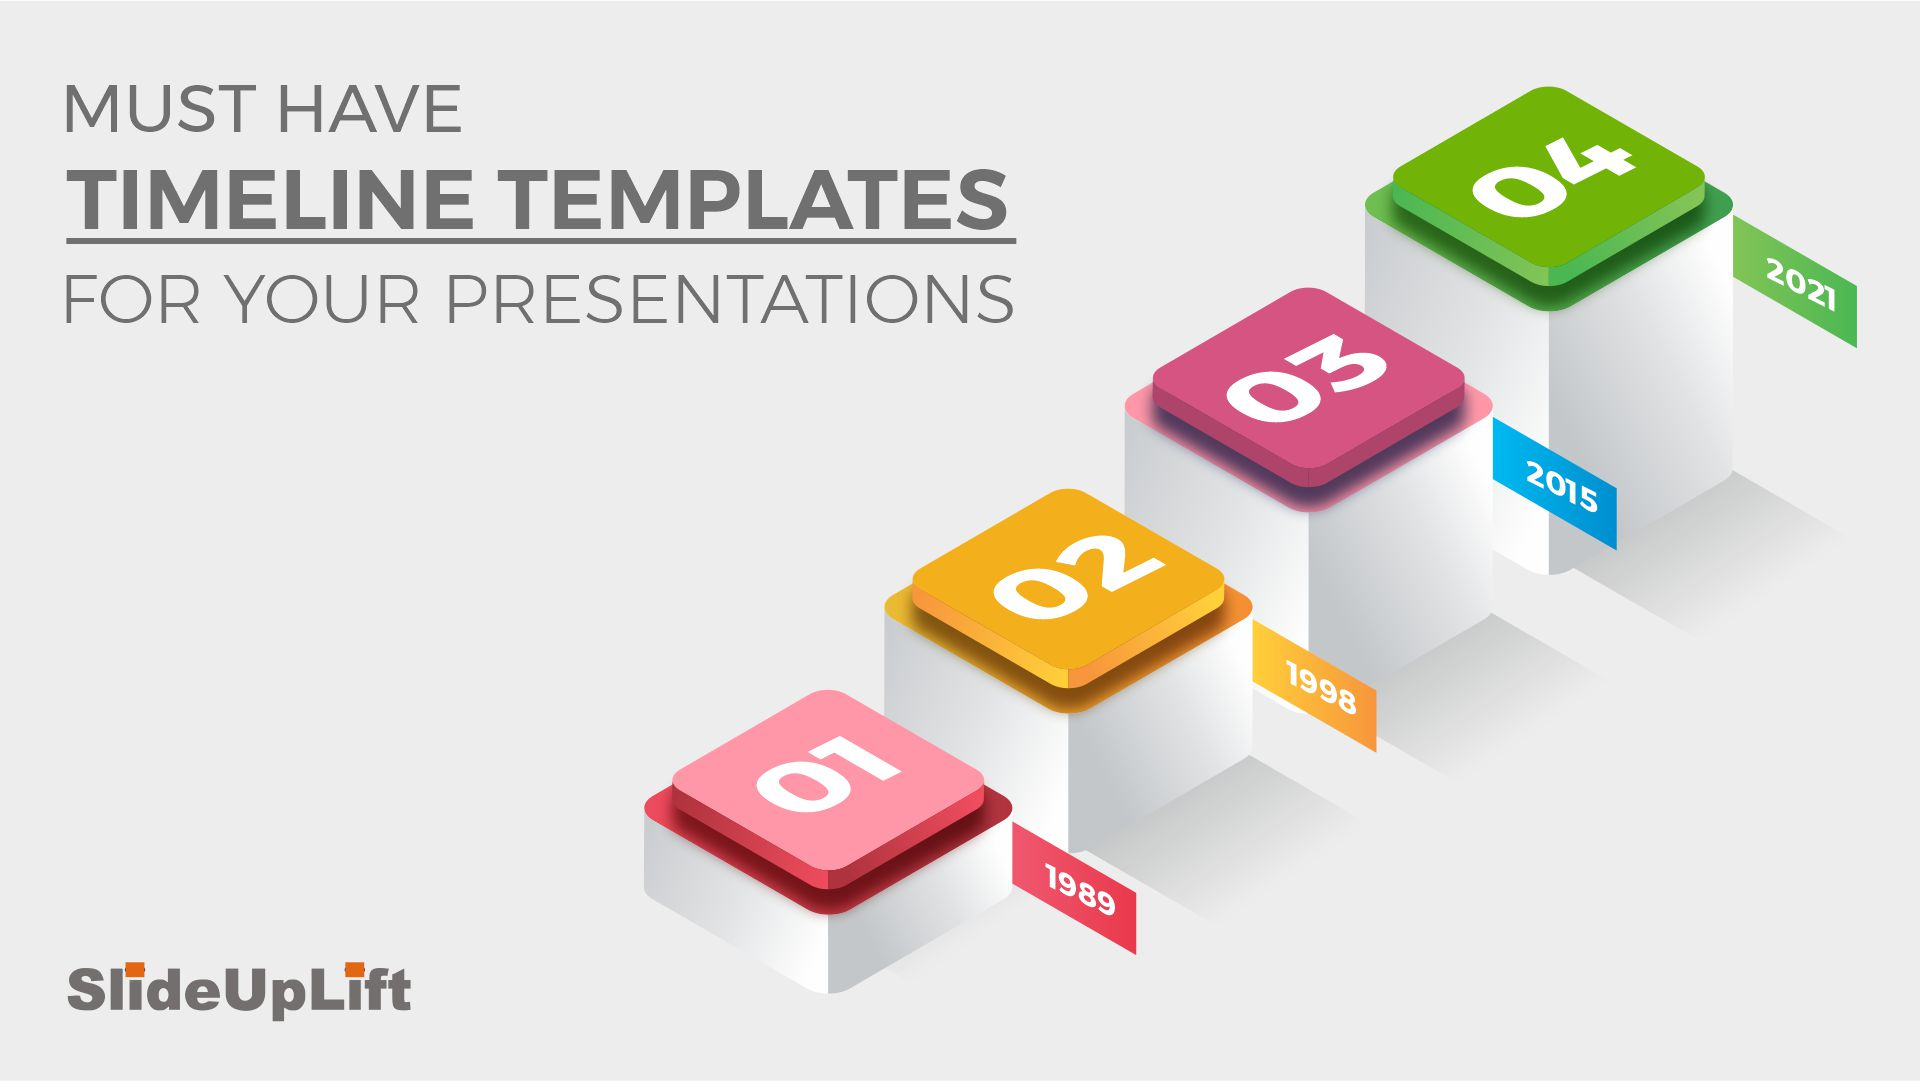 Top 5 Timeline PowerPoint Templates Every Business Professional Should Have